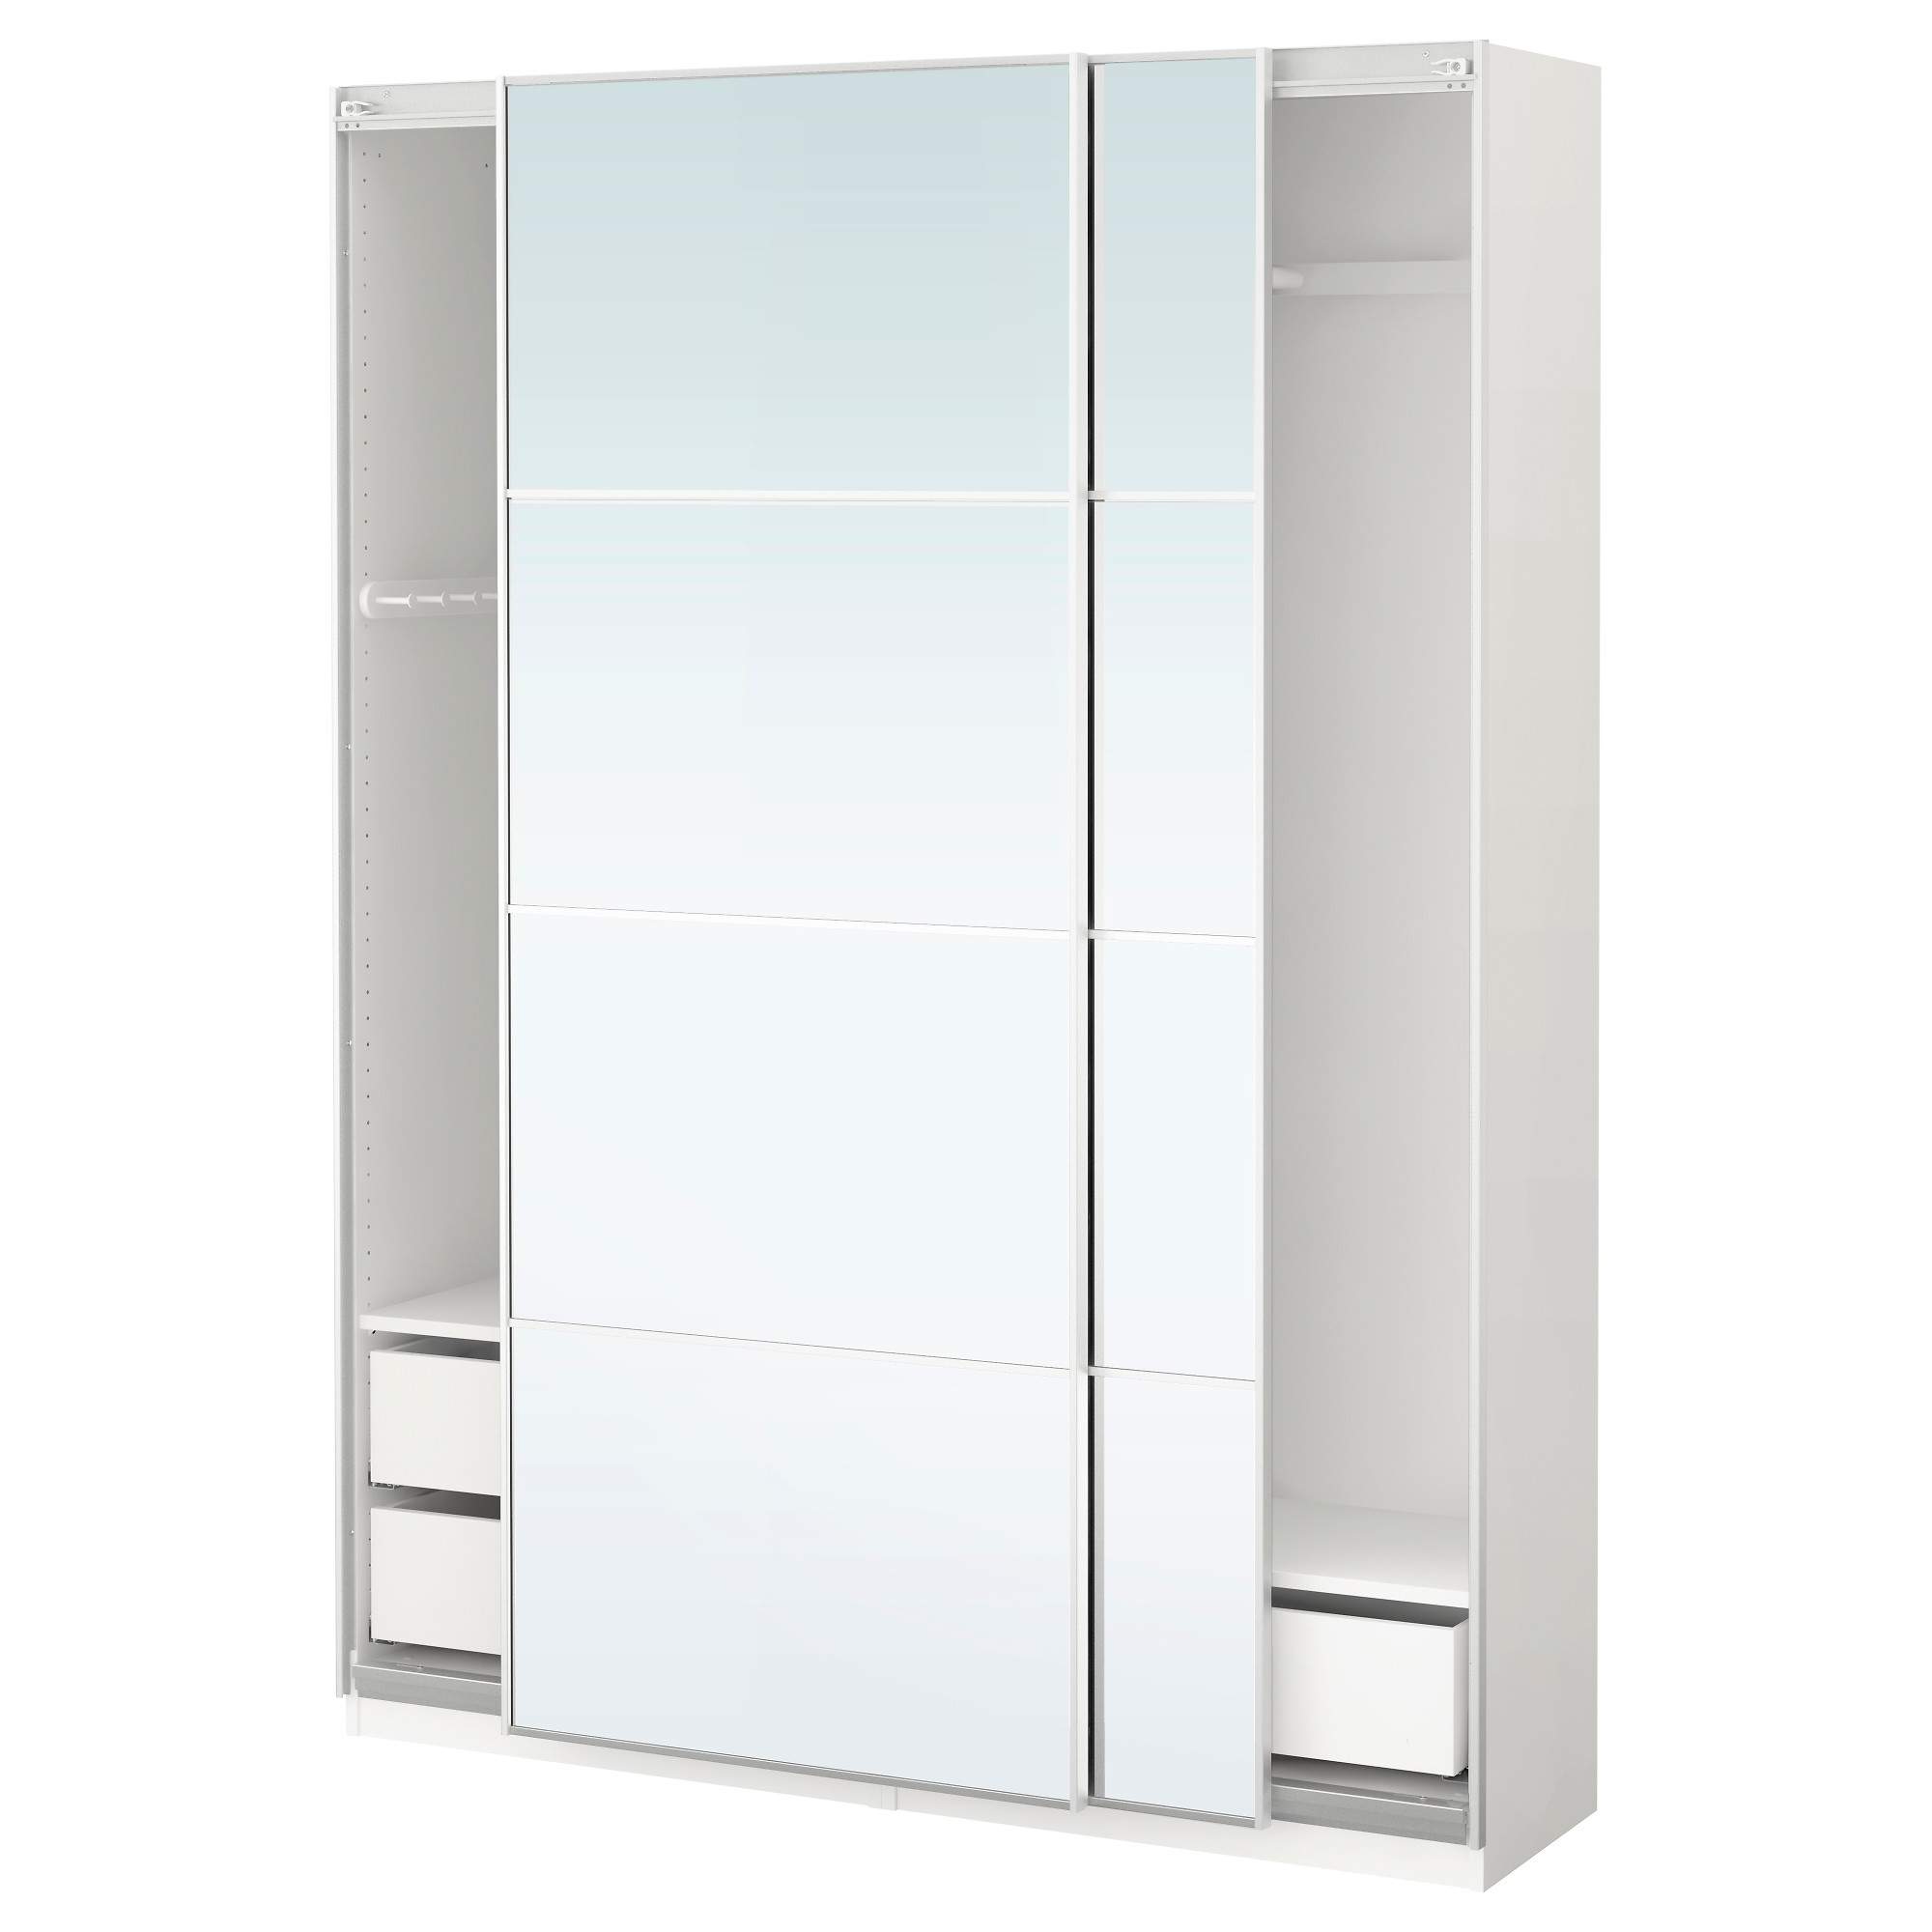 Hanging Clothes Armoire Ikea   Armoire Ikea   Jewelry Armoire Ikea